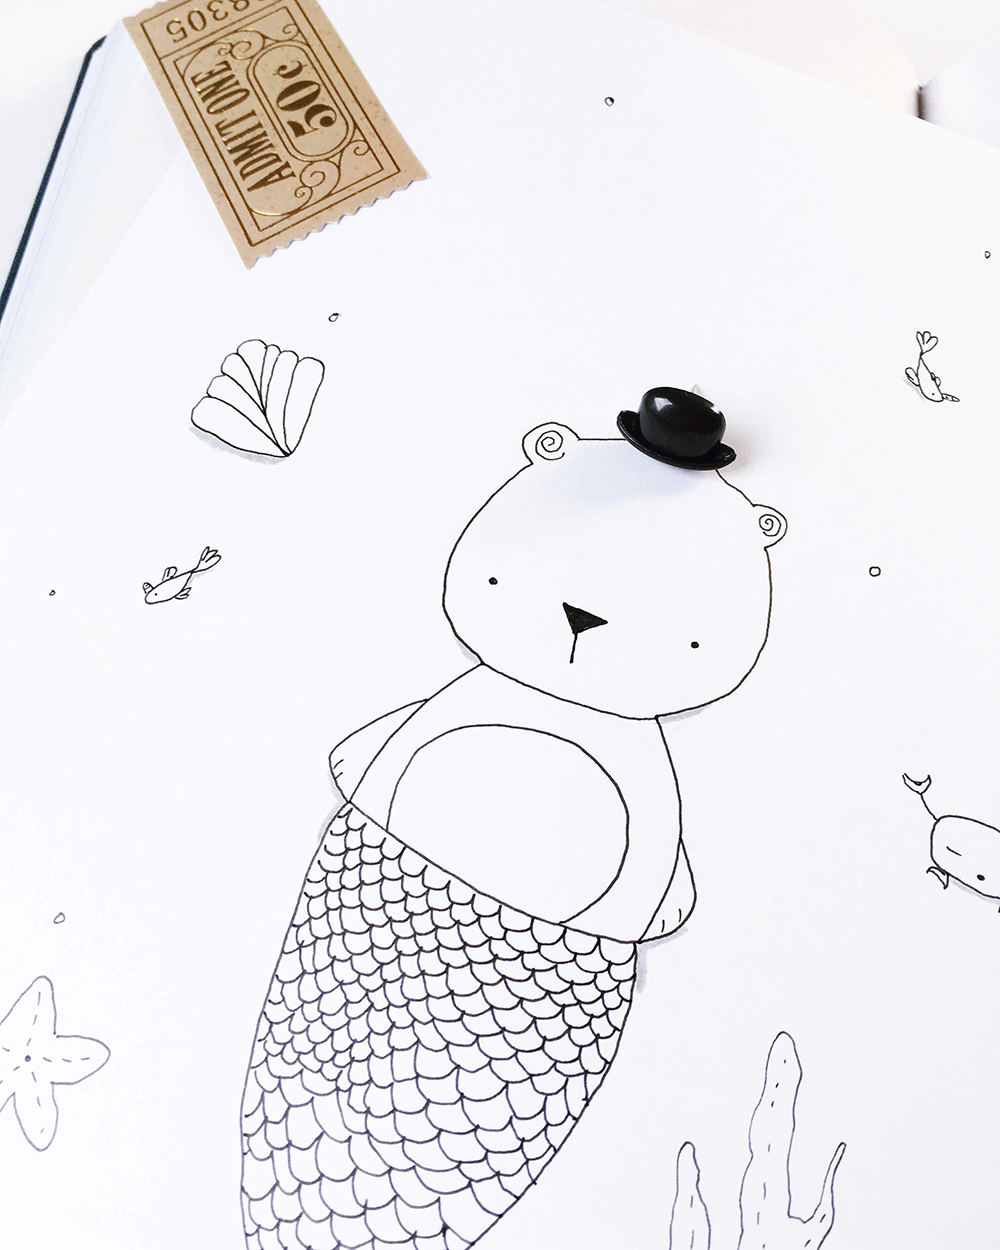 Black and white illustration of a bear in a mermaid costume